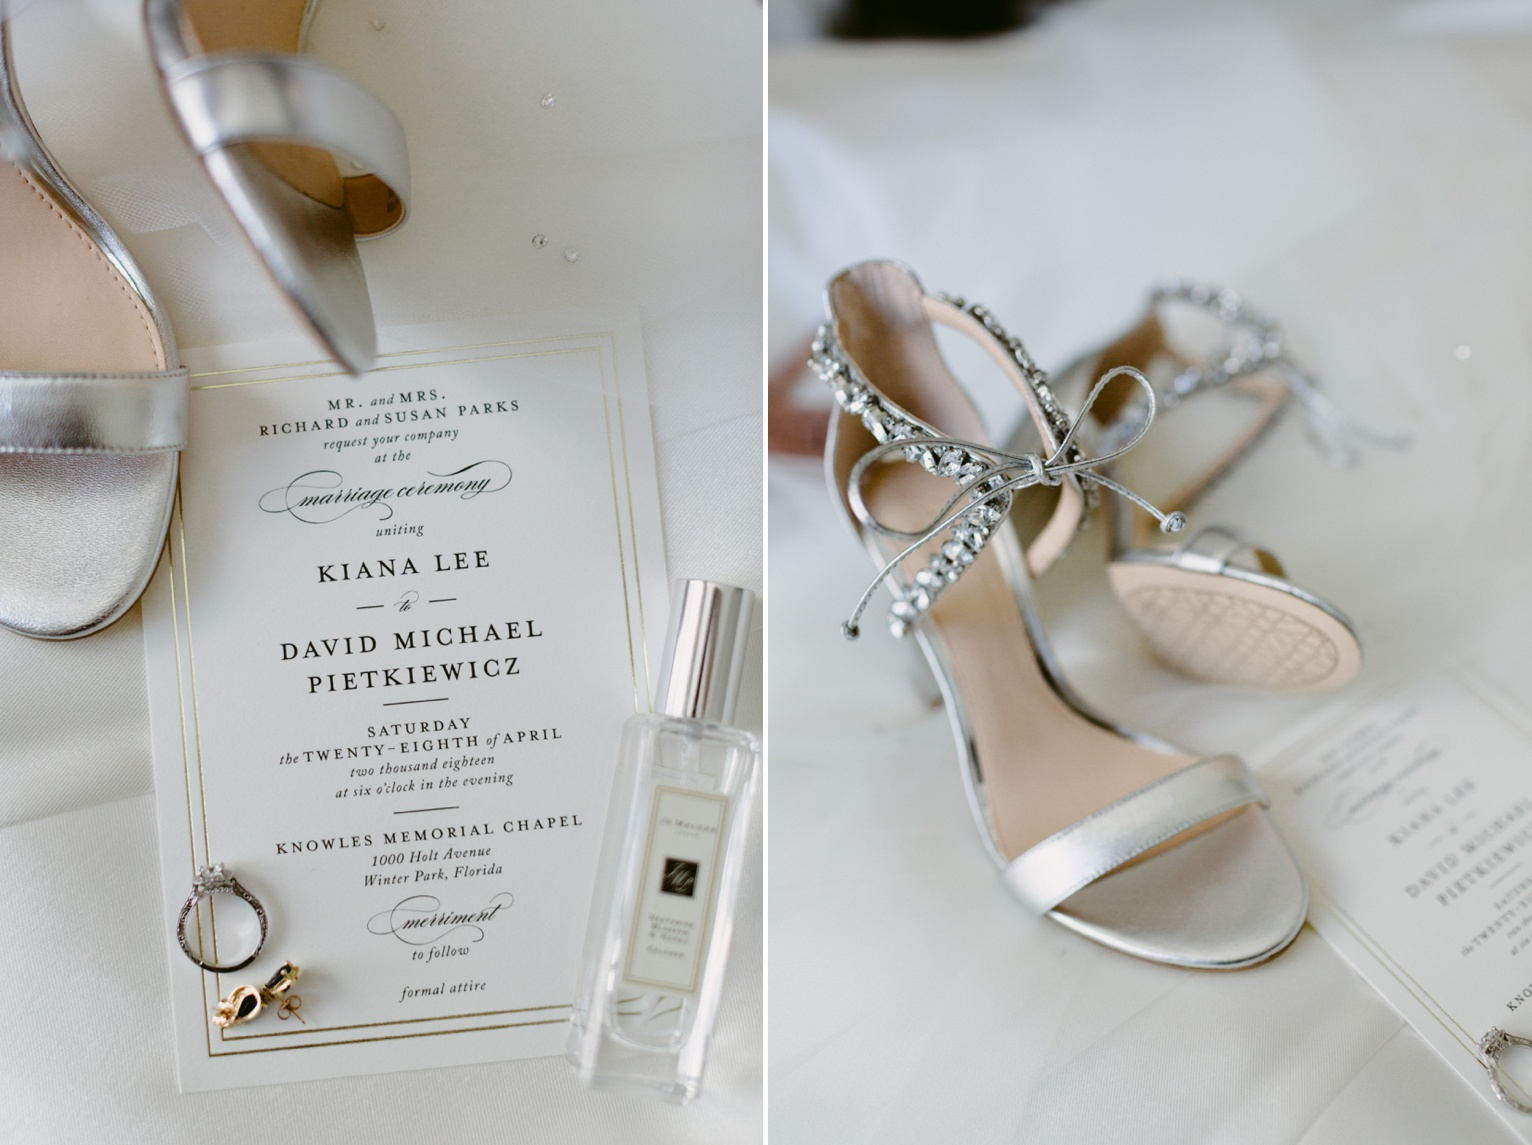 Dreamtownco.com_blog_David&Kiana_Wedding_0004.jpg